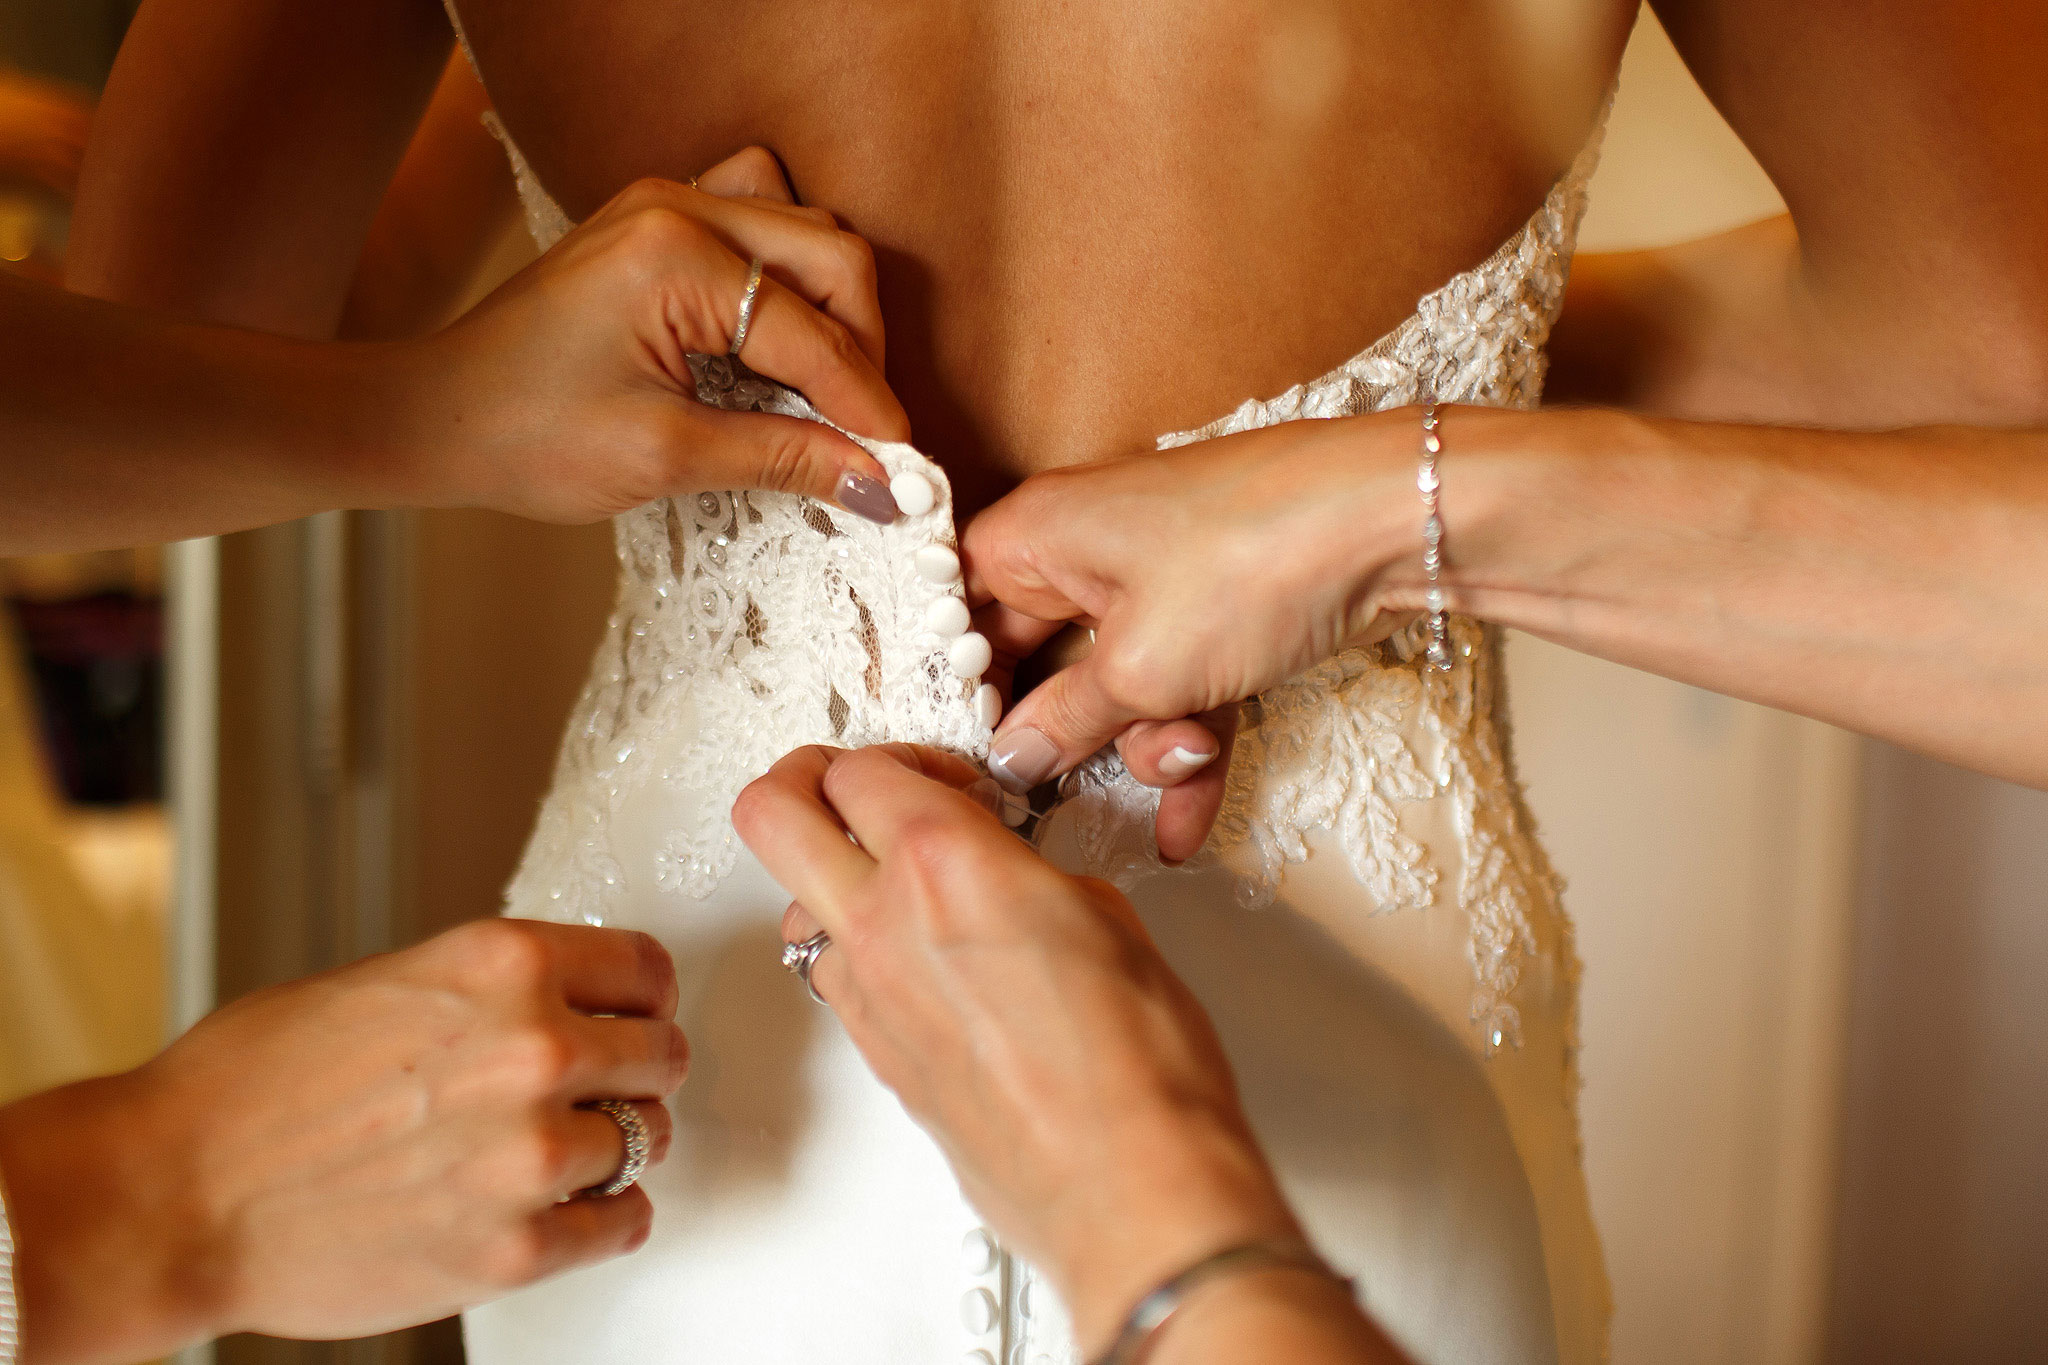 Pairs of hands tying the brides wedding dress